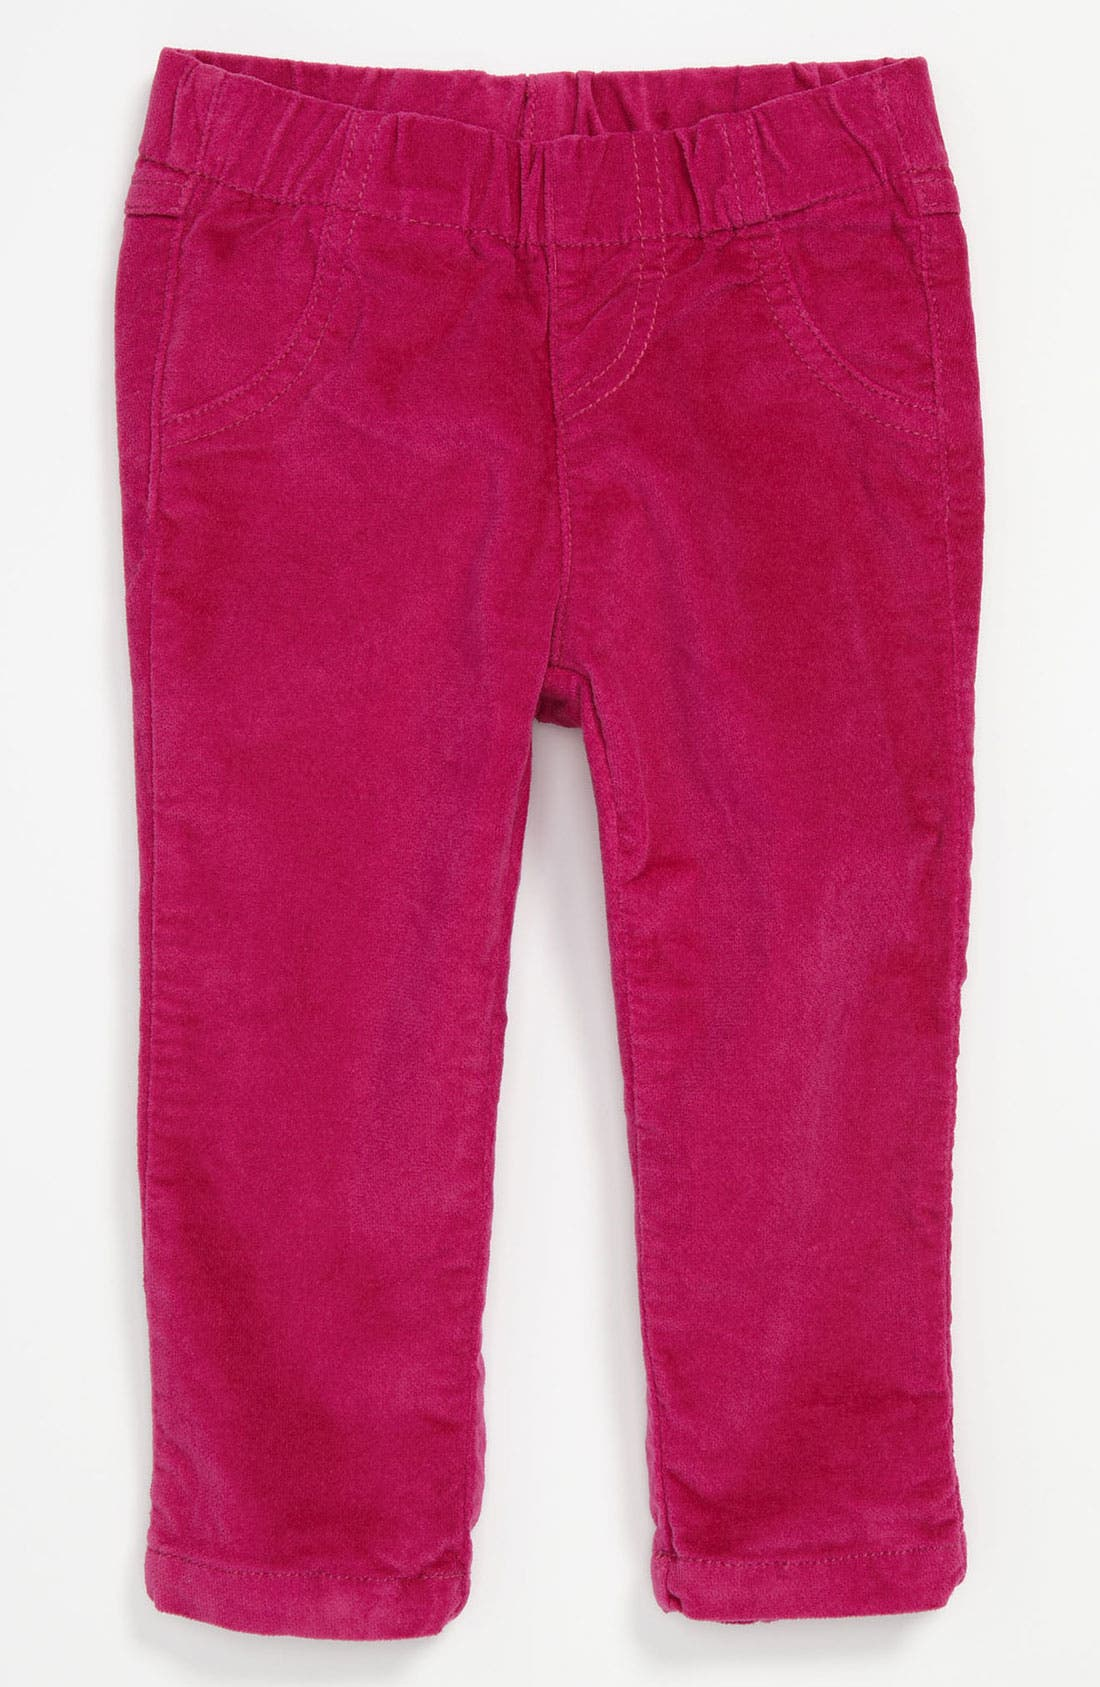 Alternate Image 1 Selected - United Colors of Benetton Kids Velvet Pants (Infant)